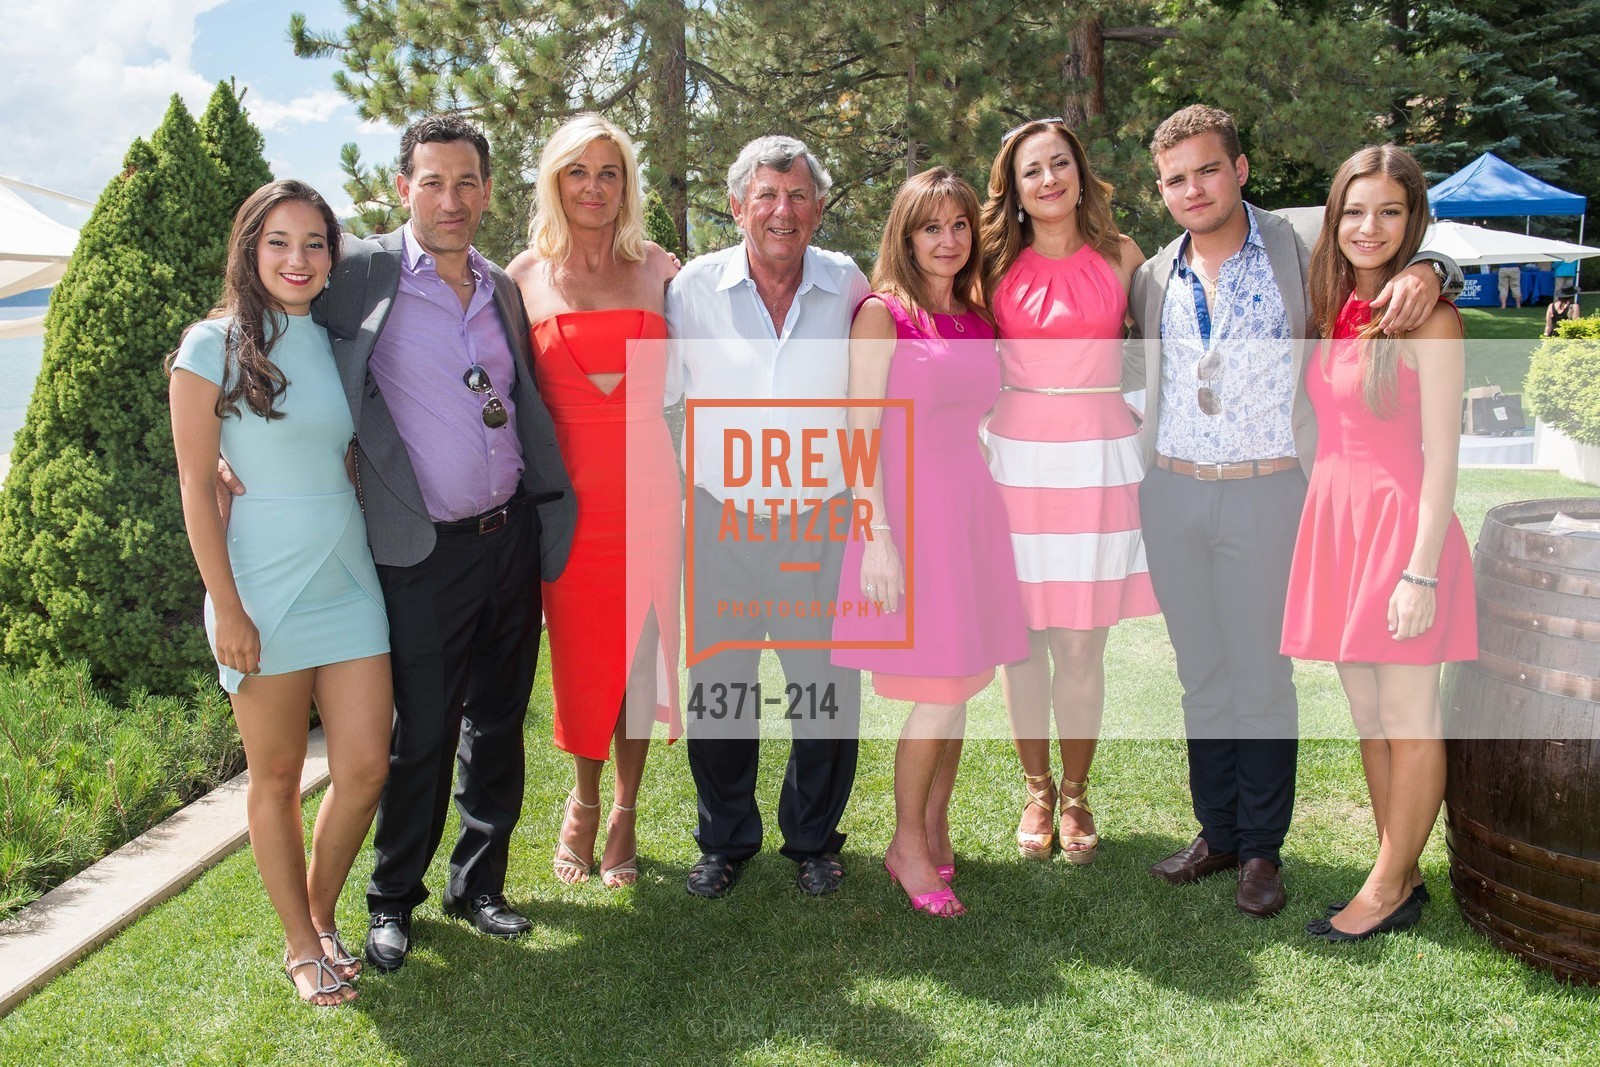 Veronica Gonzalez, Guillermo Gonzalez, Angela Karp, Kern Schumacher, Maria Urso, Veronica Salinas, Raquel Gonzalez, Saks Fifth Avenue and The League to Save Lake Tahoe Present Fashion on the Lake, Private Residence, August 1st, 2015,Drew Altizer, Drew Altizer Photography, full-service agency, private events, San Francisco photographer, photographer california